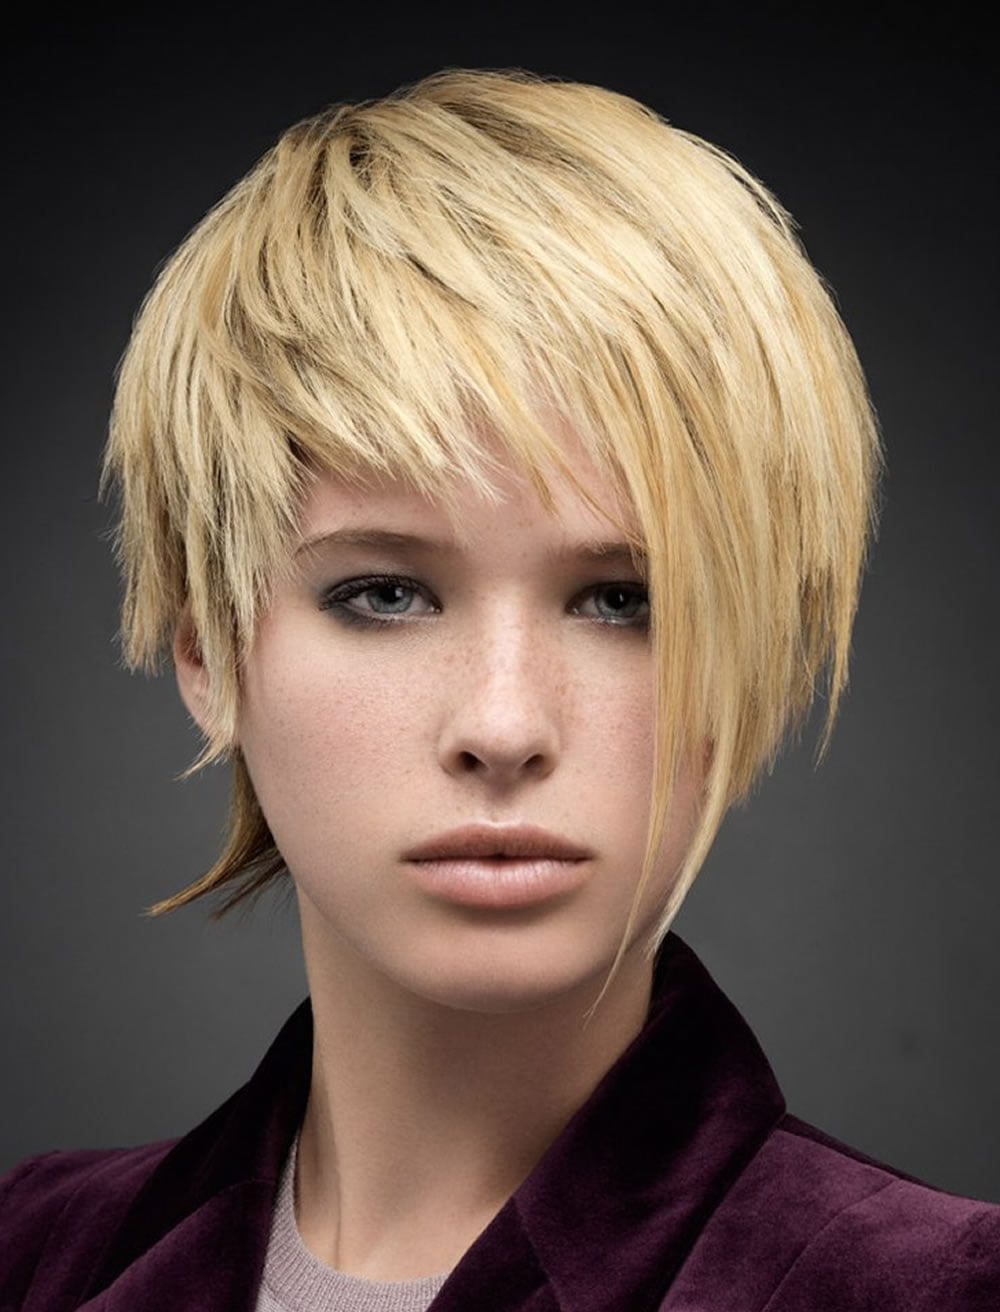 30 Amazing Short Hair Haircuts For Girls 2018 2019 Hairstyles